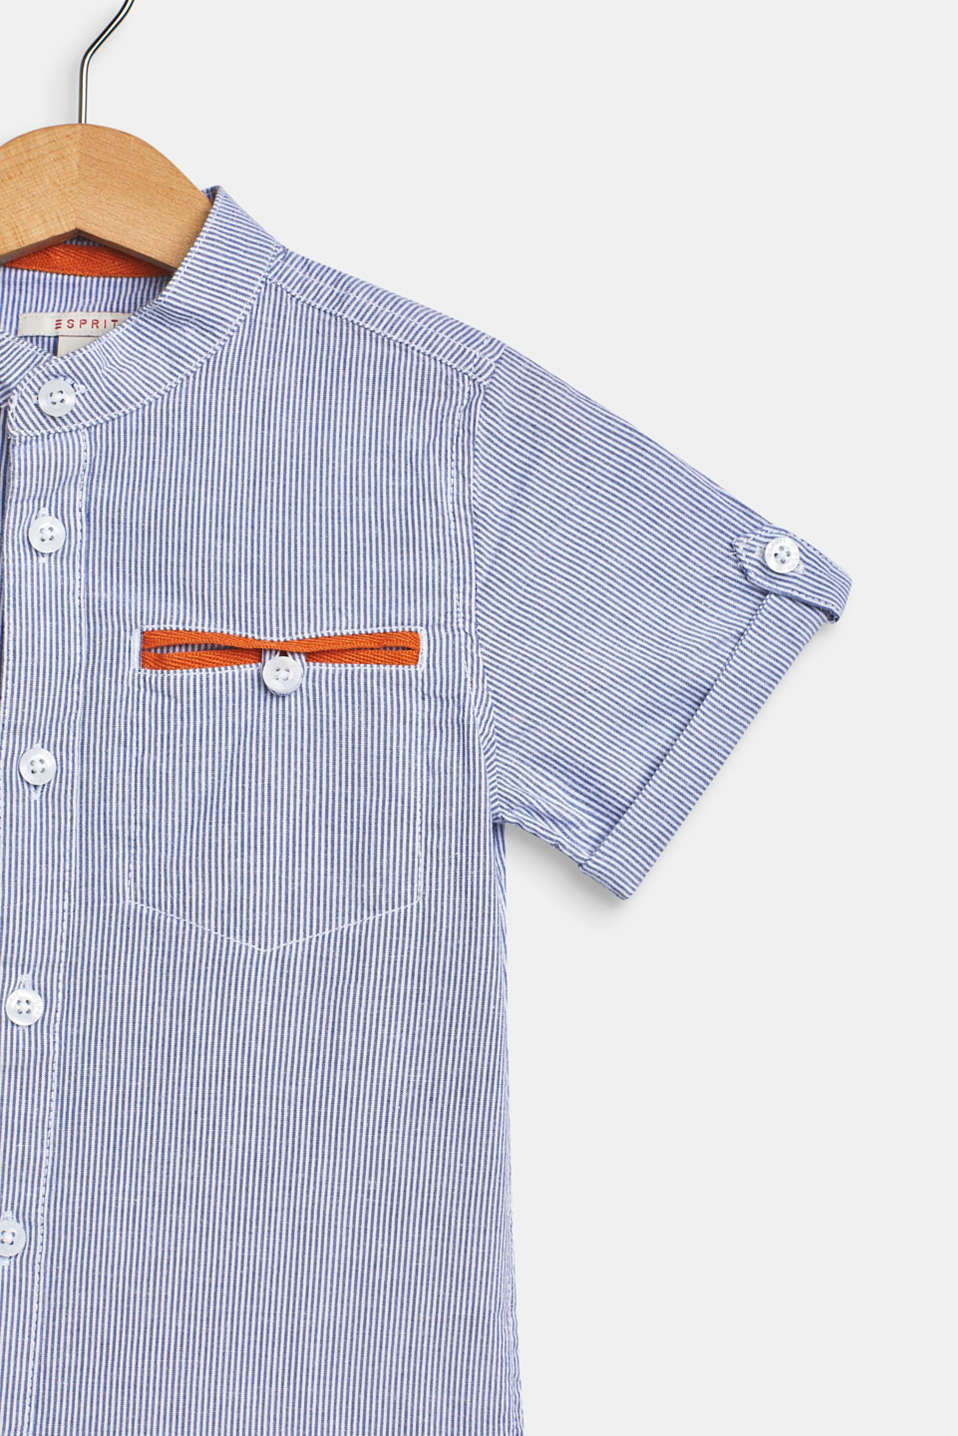 Striped short sleeve shirt, 100% cotton, WHITE, detail image number 2